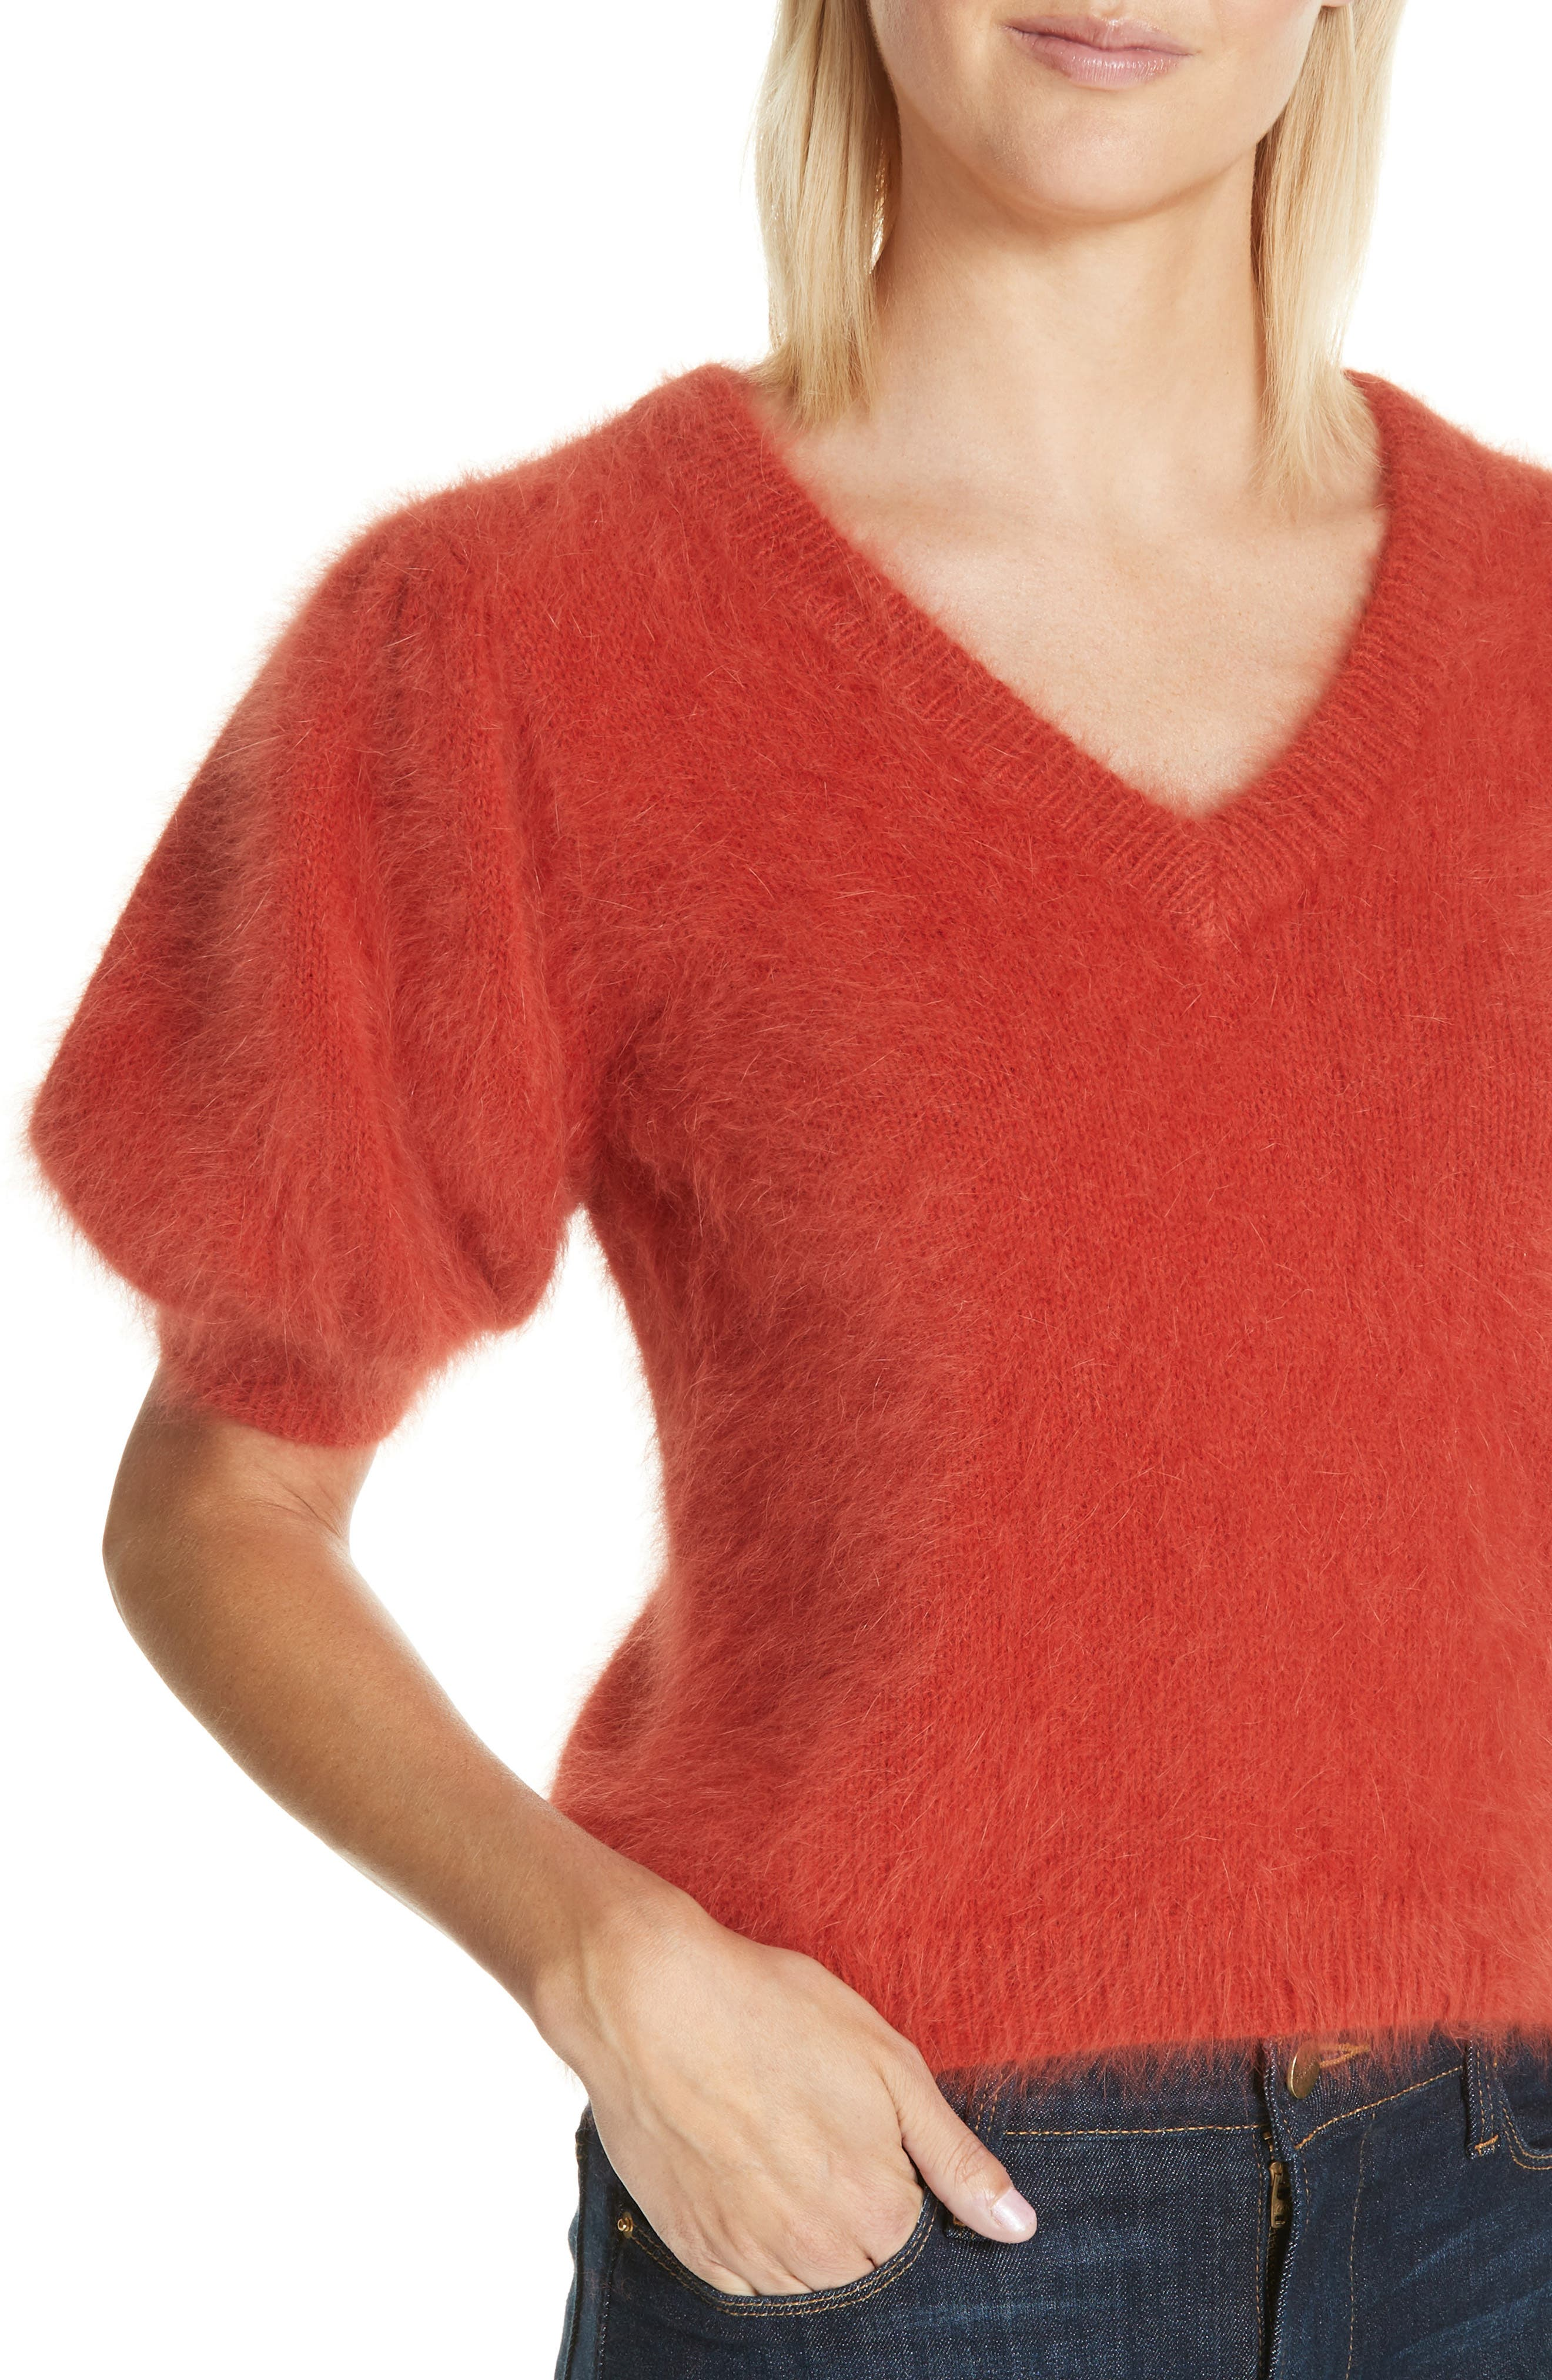 Aries Puff Sleeve Sweater,                             Alternate thumbnail 4, color,                             CRIMSON